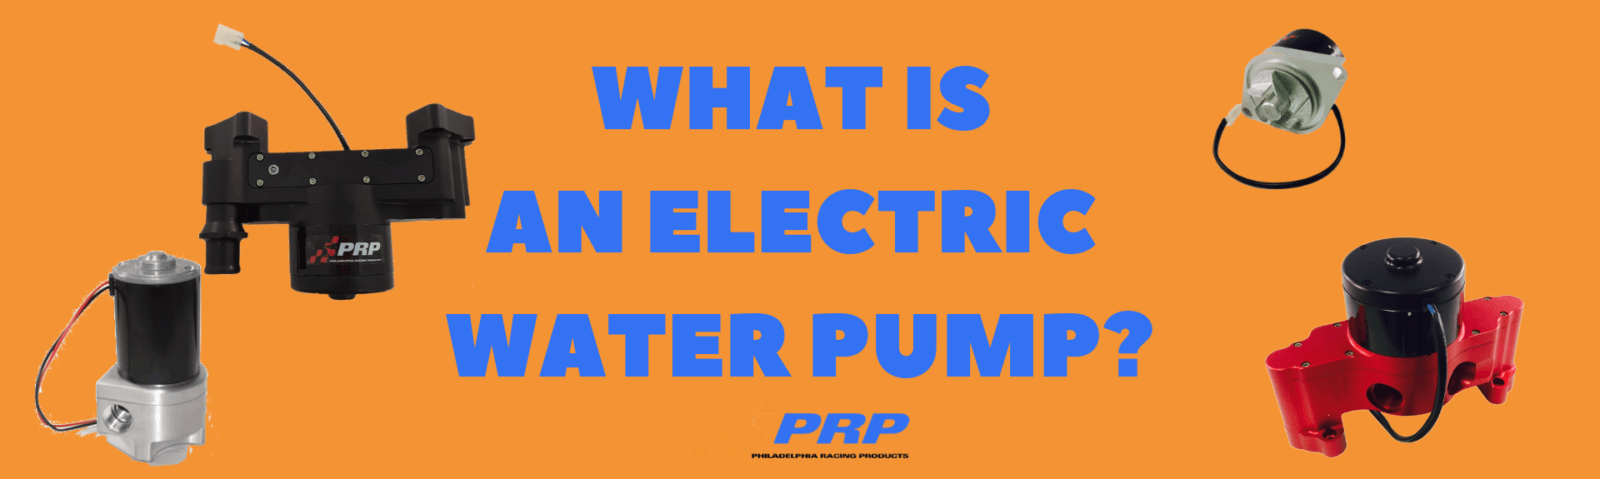 What is an electric water pump? PRP Racing Products, Philadelphia Racing